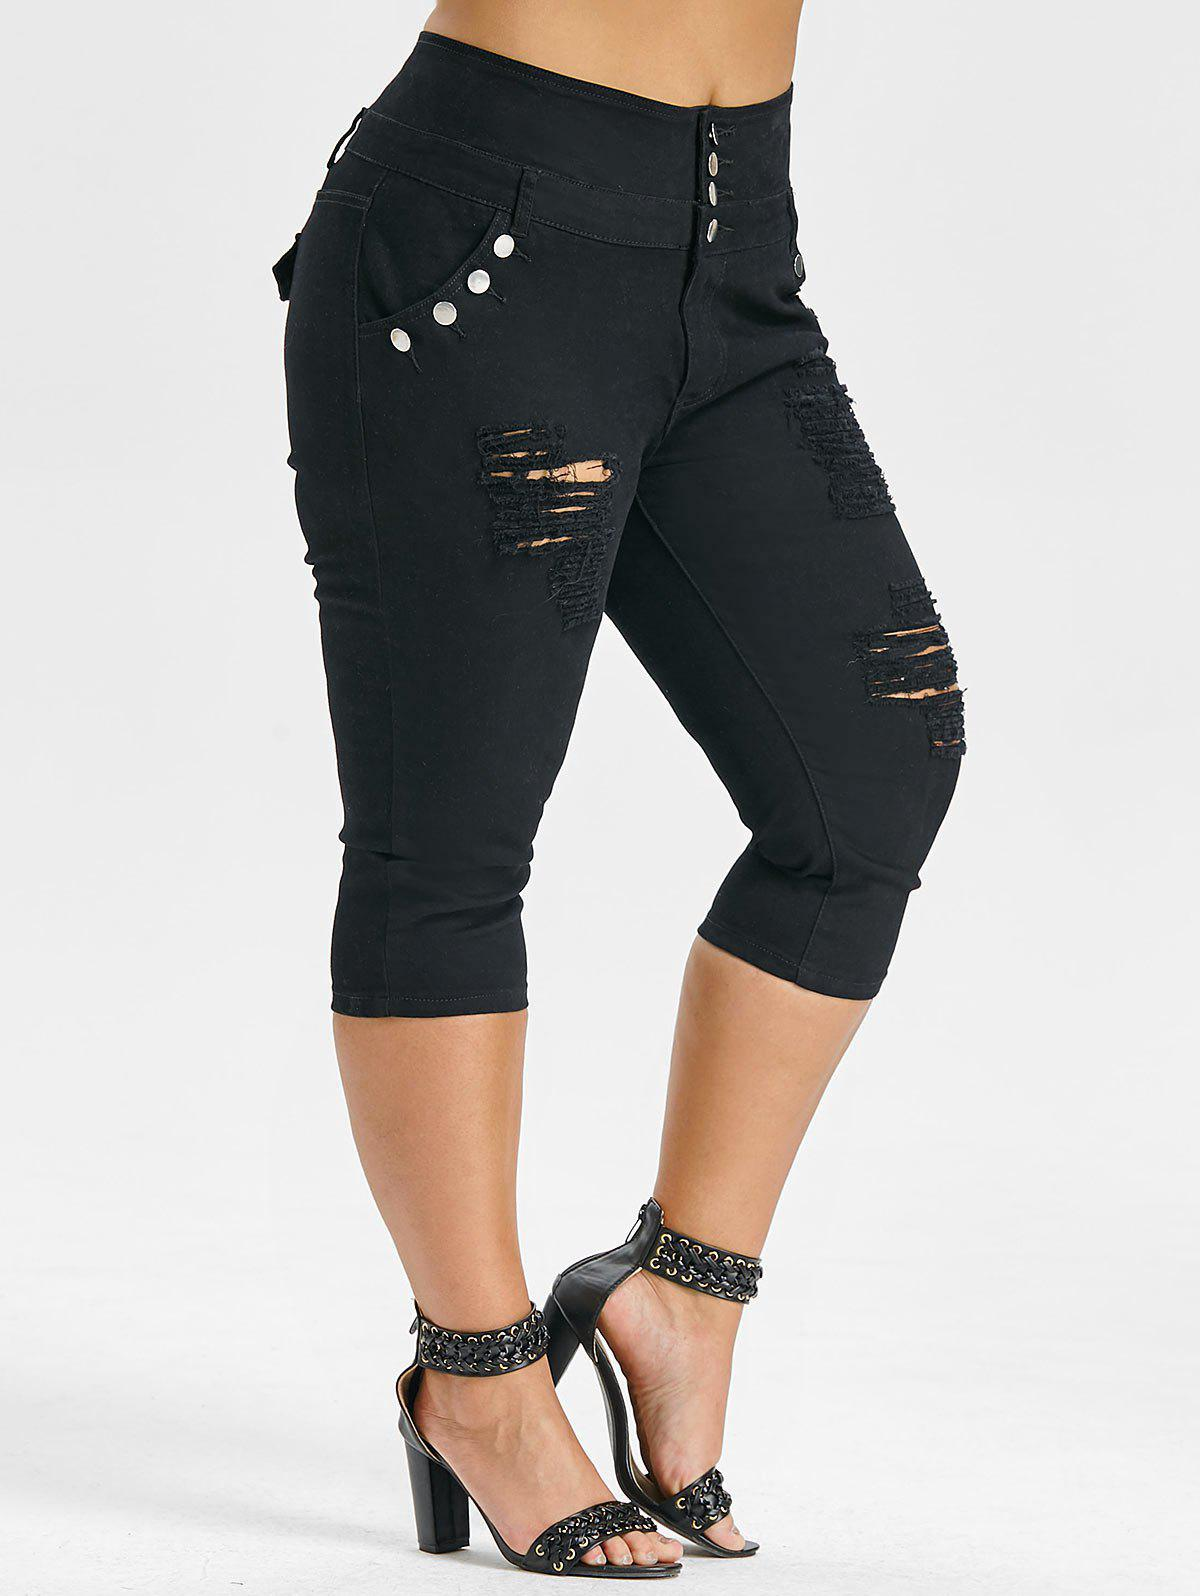 Plus Size High Waisted Ripped Cropped Jeans - BLACK 5X